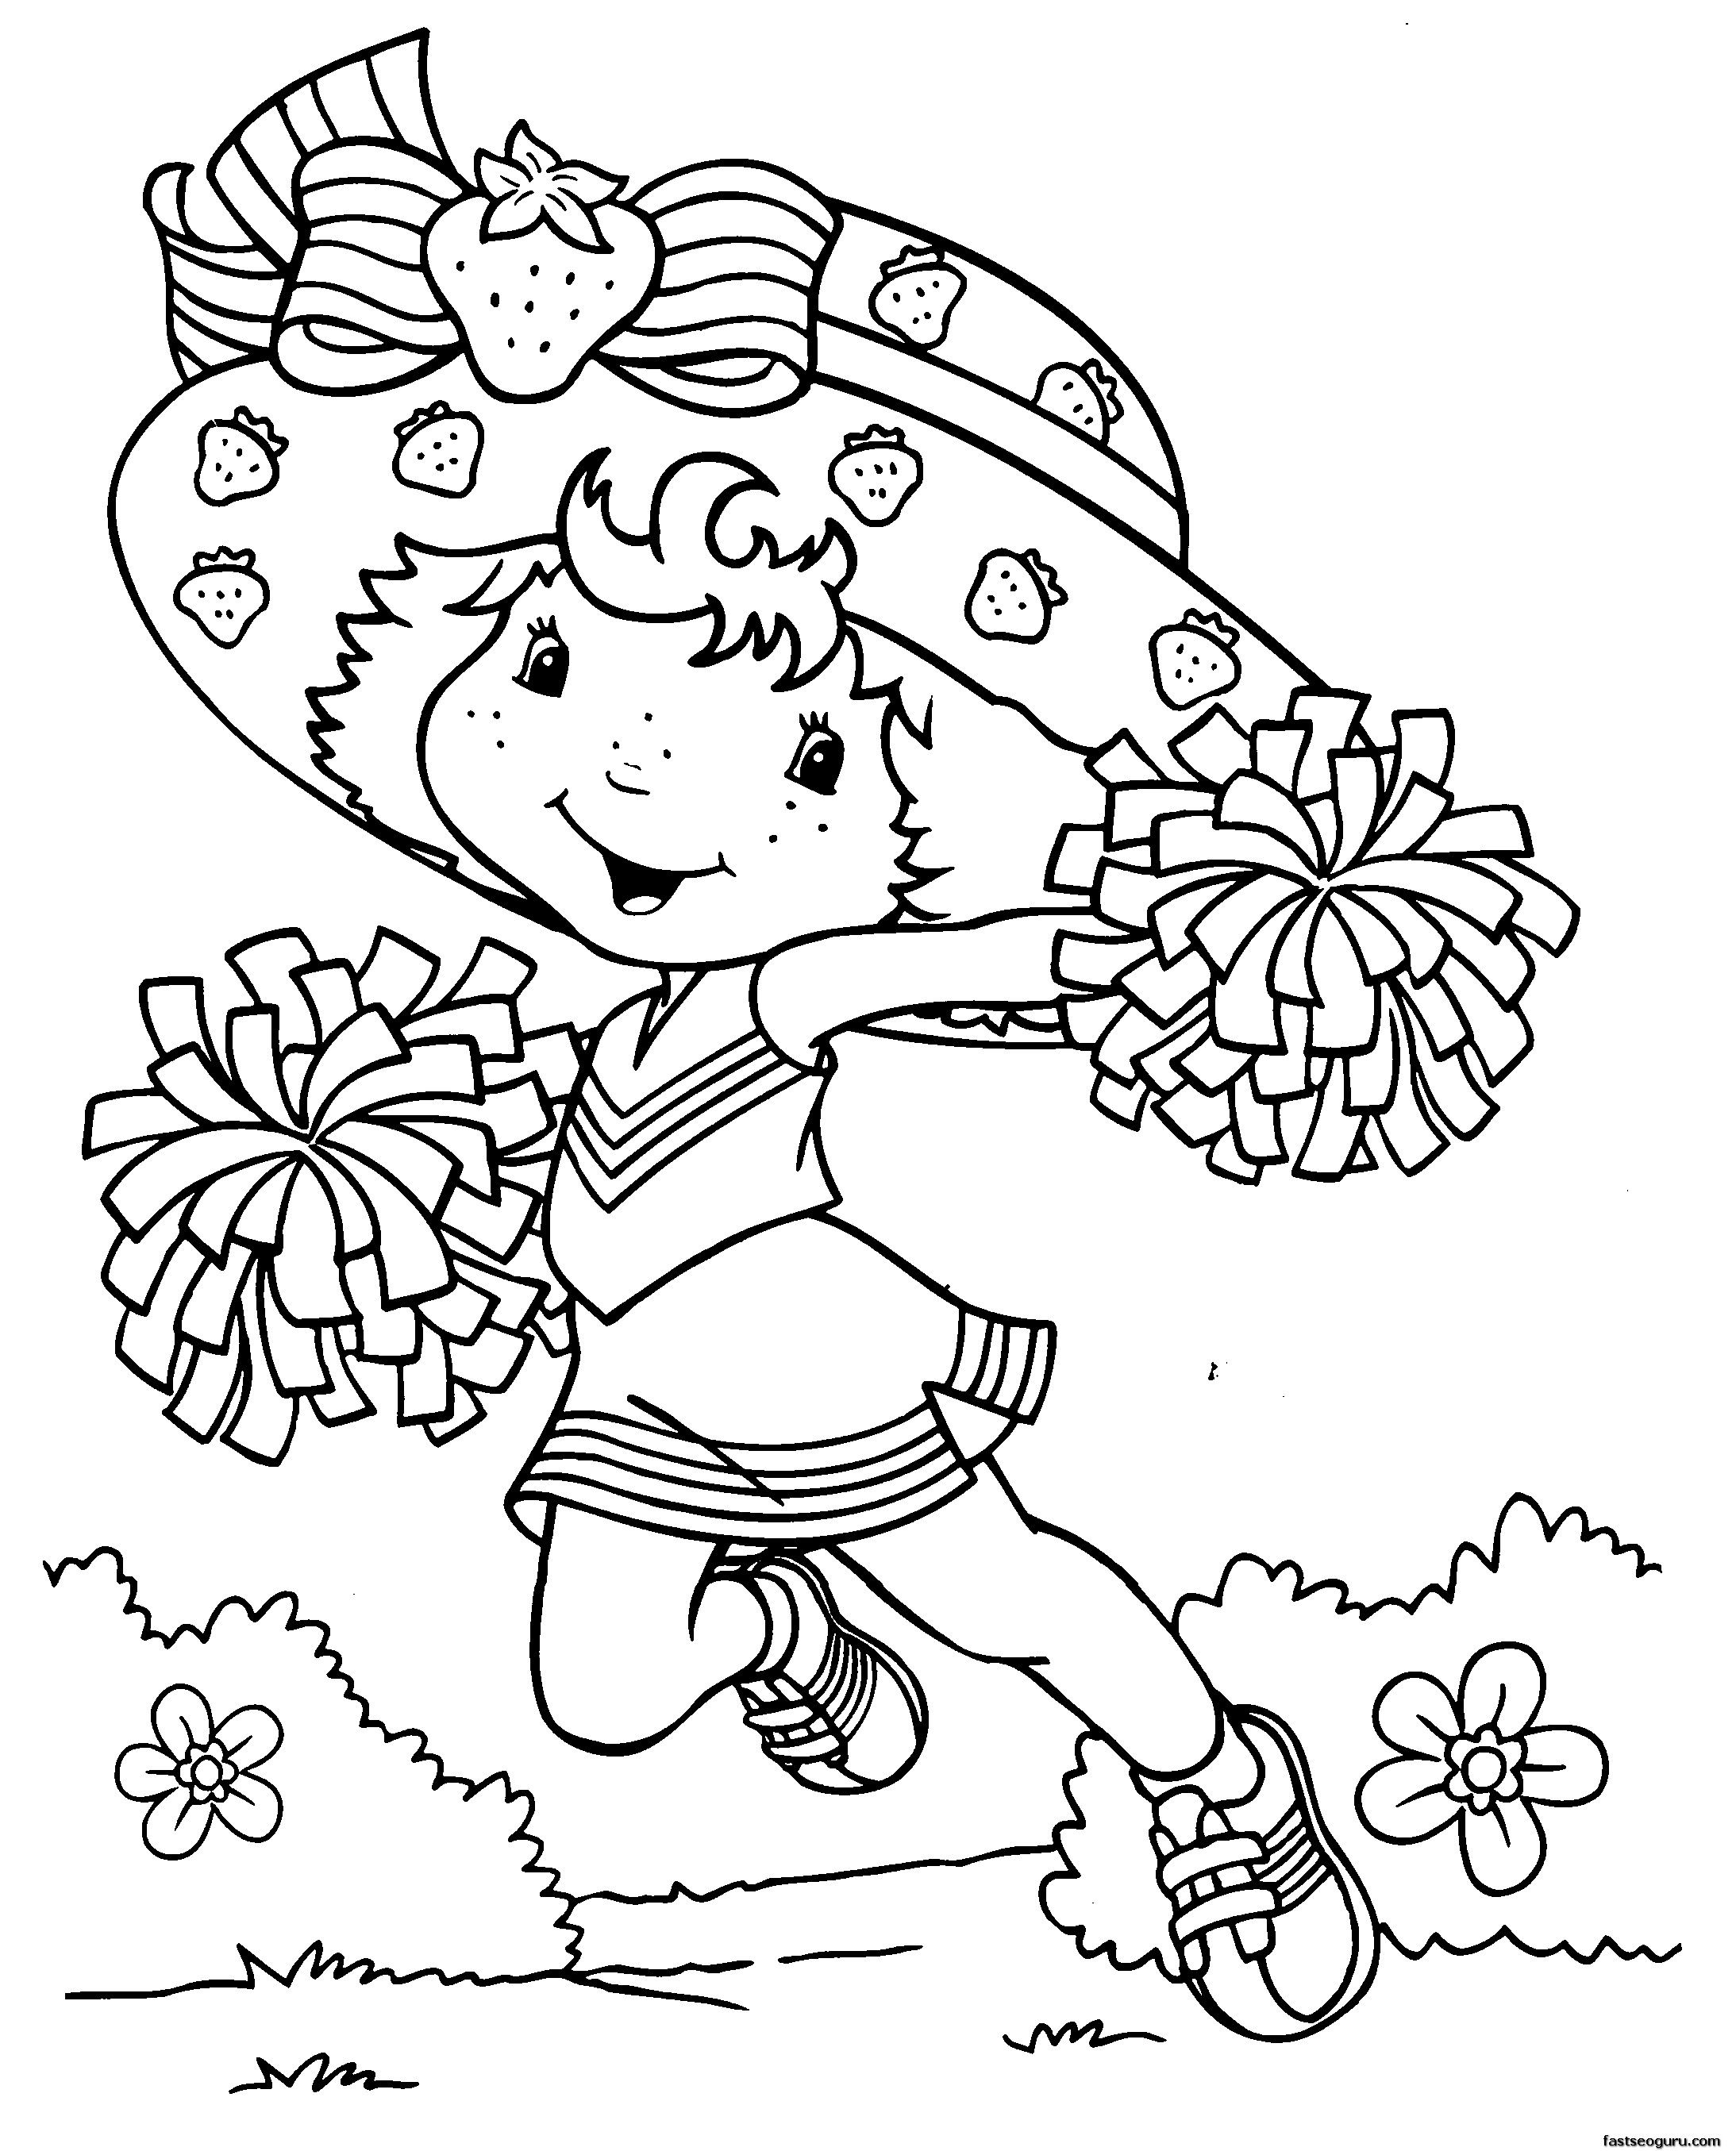 Coloring book pages pinterest - Coloring Pages For Girls Pinterest Tumblr Google Yahoo Imgur Wallpapers Coloring Pages For Girls Images